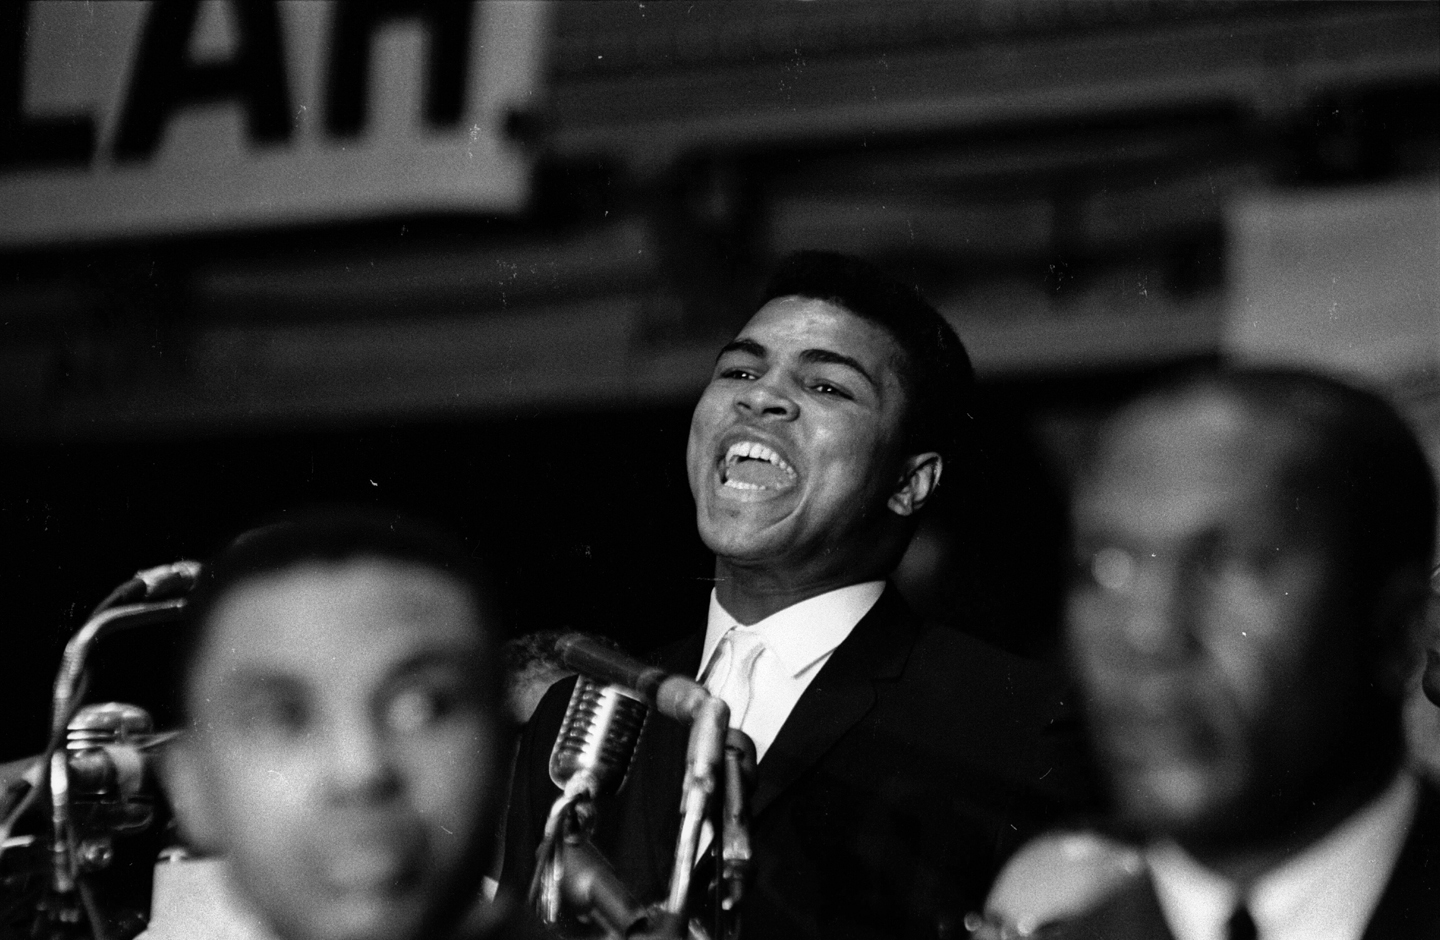 American boxer Muhammad Ali (born Cassius Clay) (left) speaks from a lecturn during the Saviour's Day celebrations at the International Ampitheatre, Chicago, Illinois, February 27, 1965.